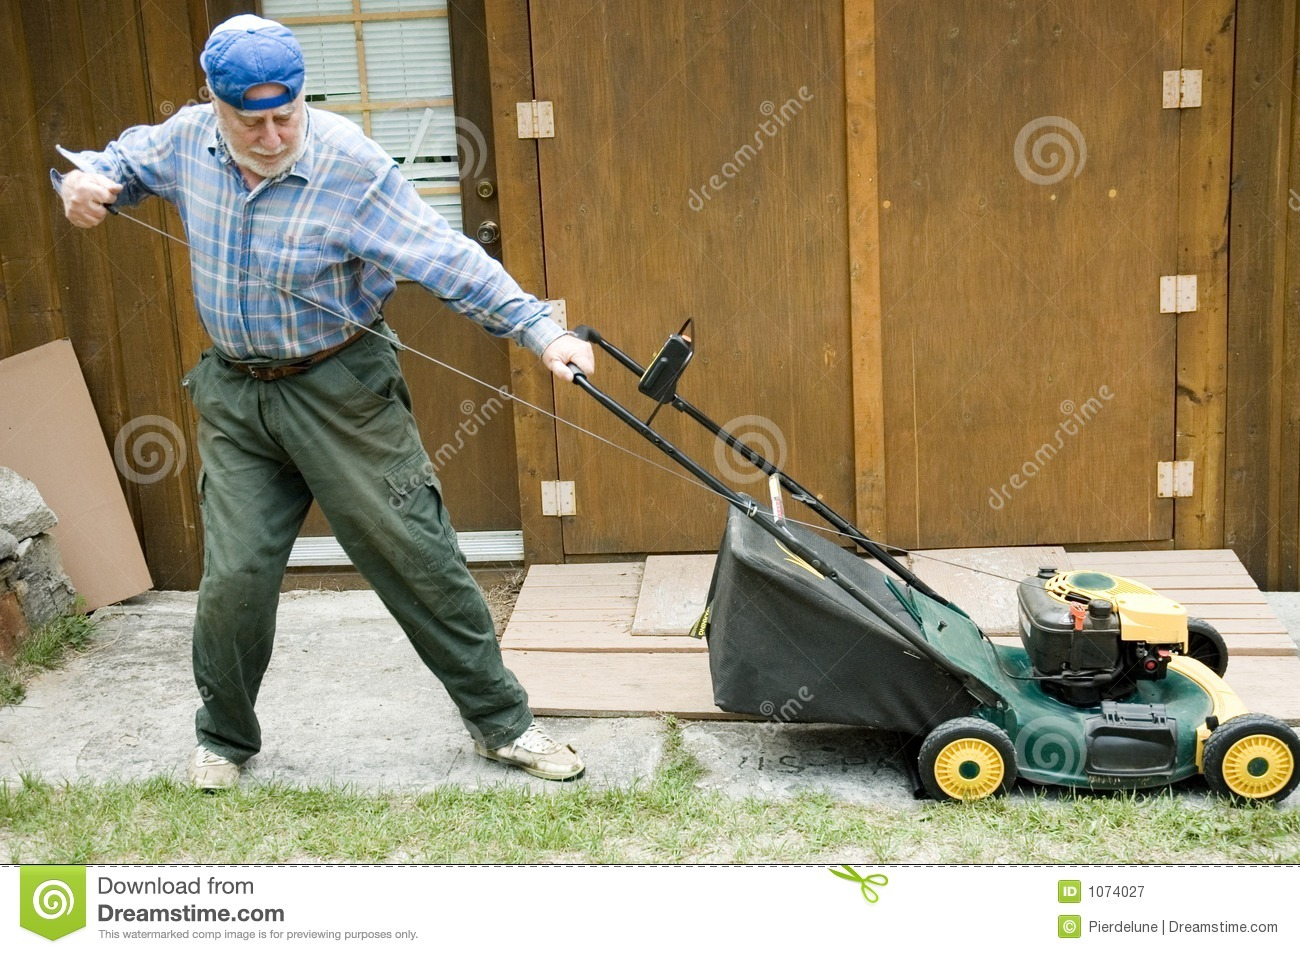 Lawn Mower Starting 2 Royalty Free Stock Photography - Image: 1074027